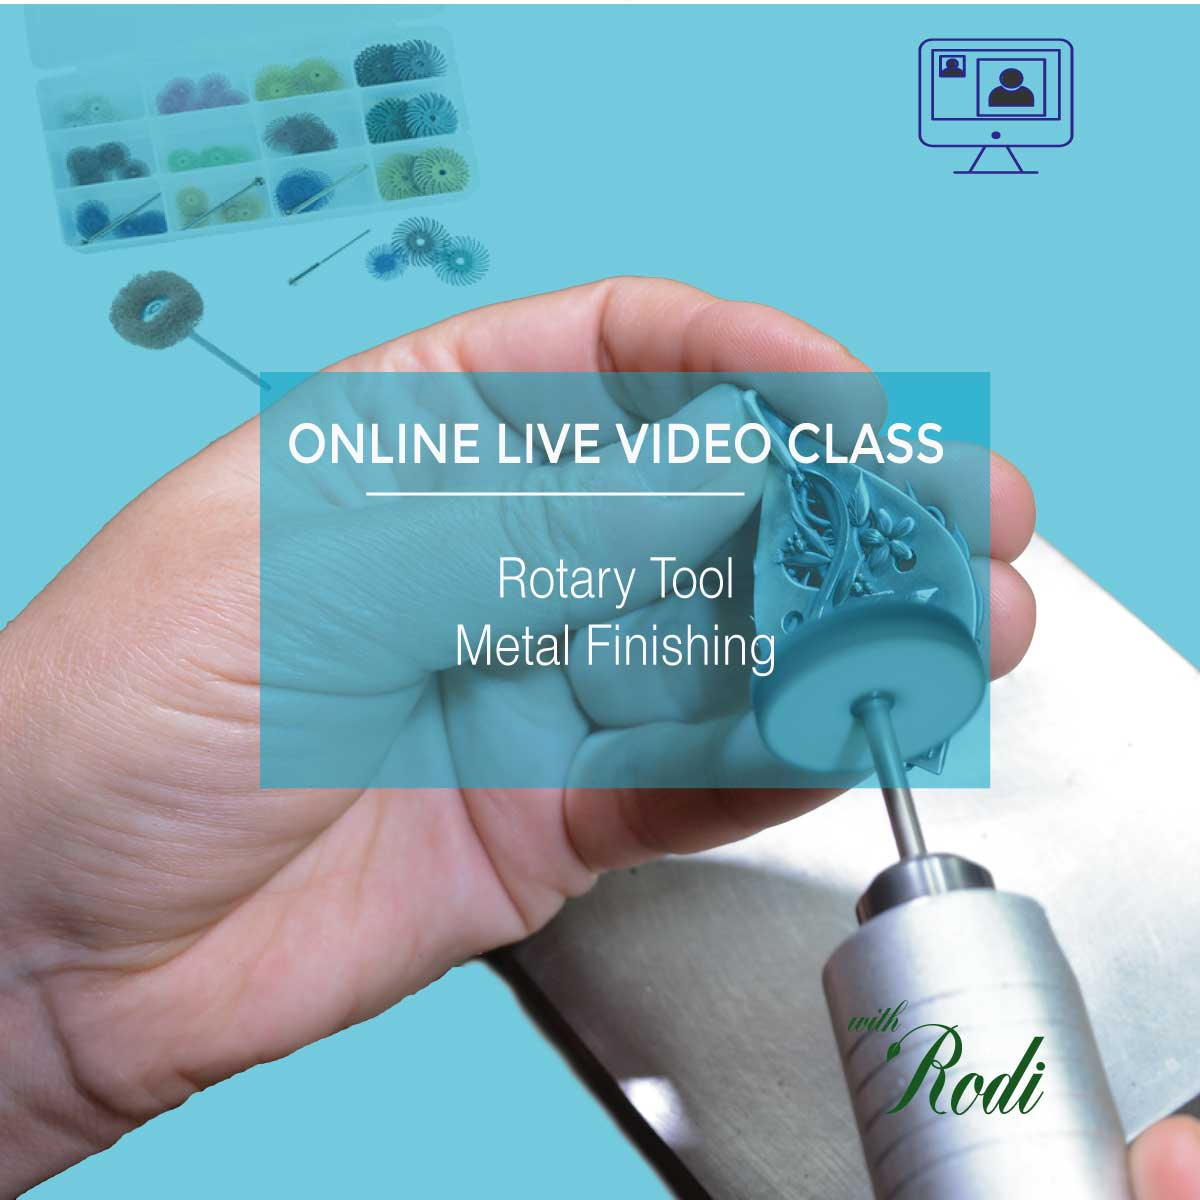 Rotary Tool Metal Finishing - Live Video Class - Metal Clay Adventures